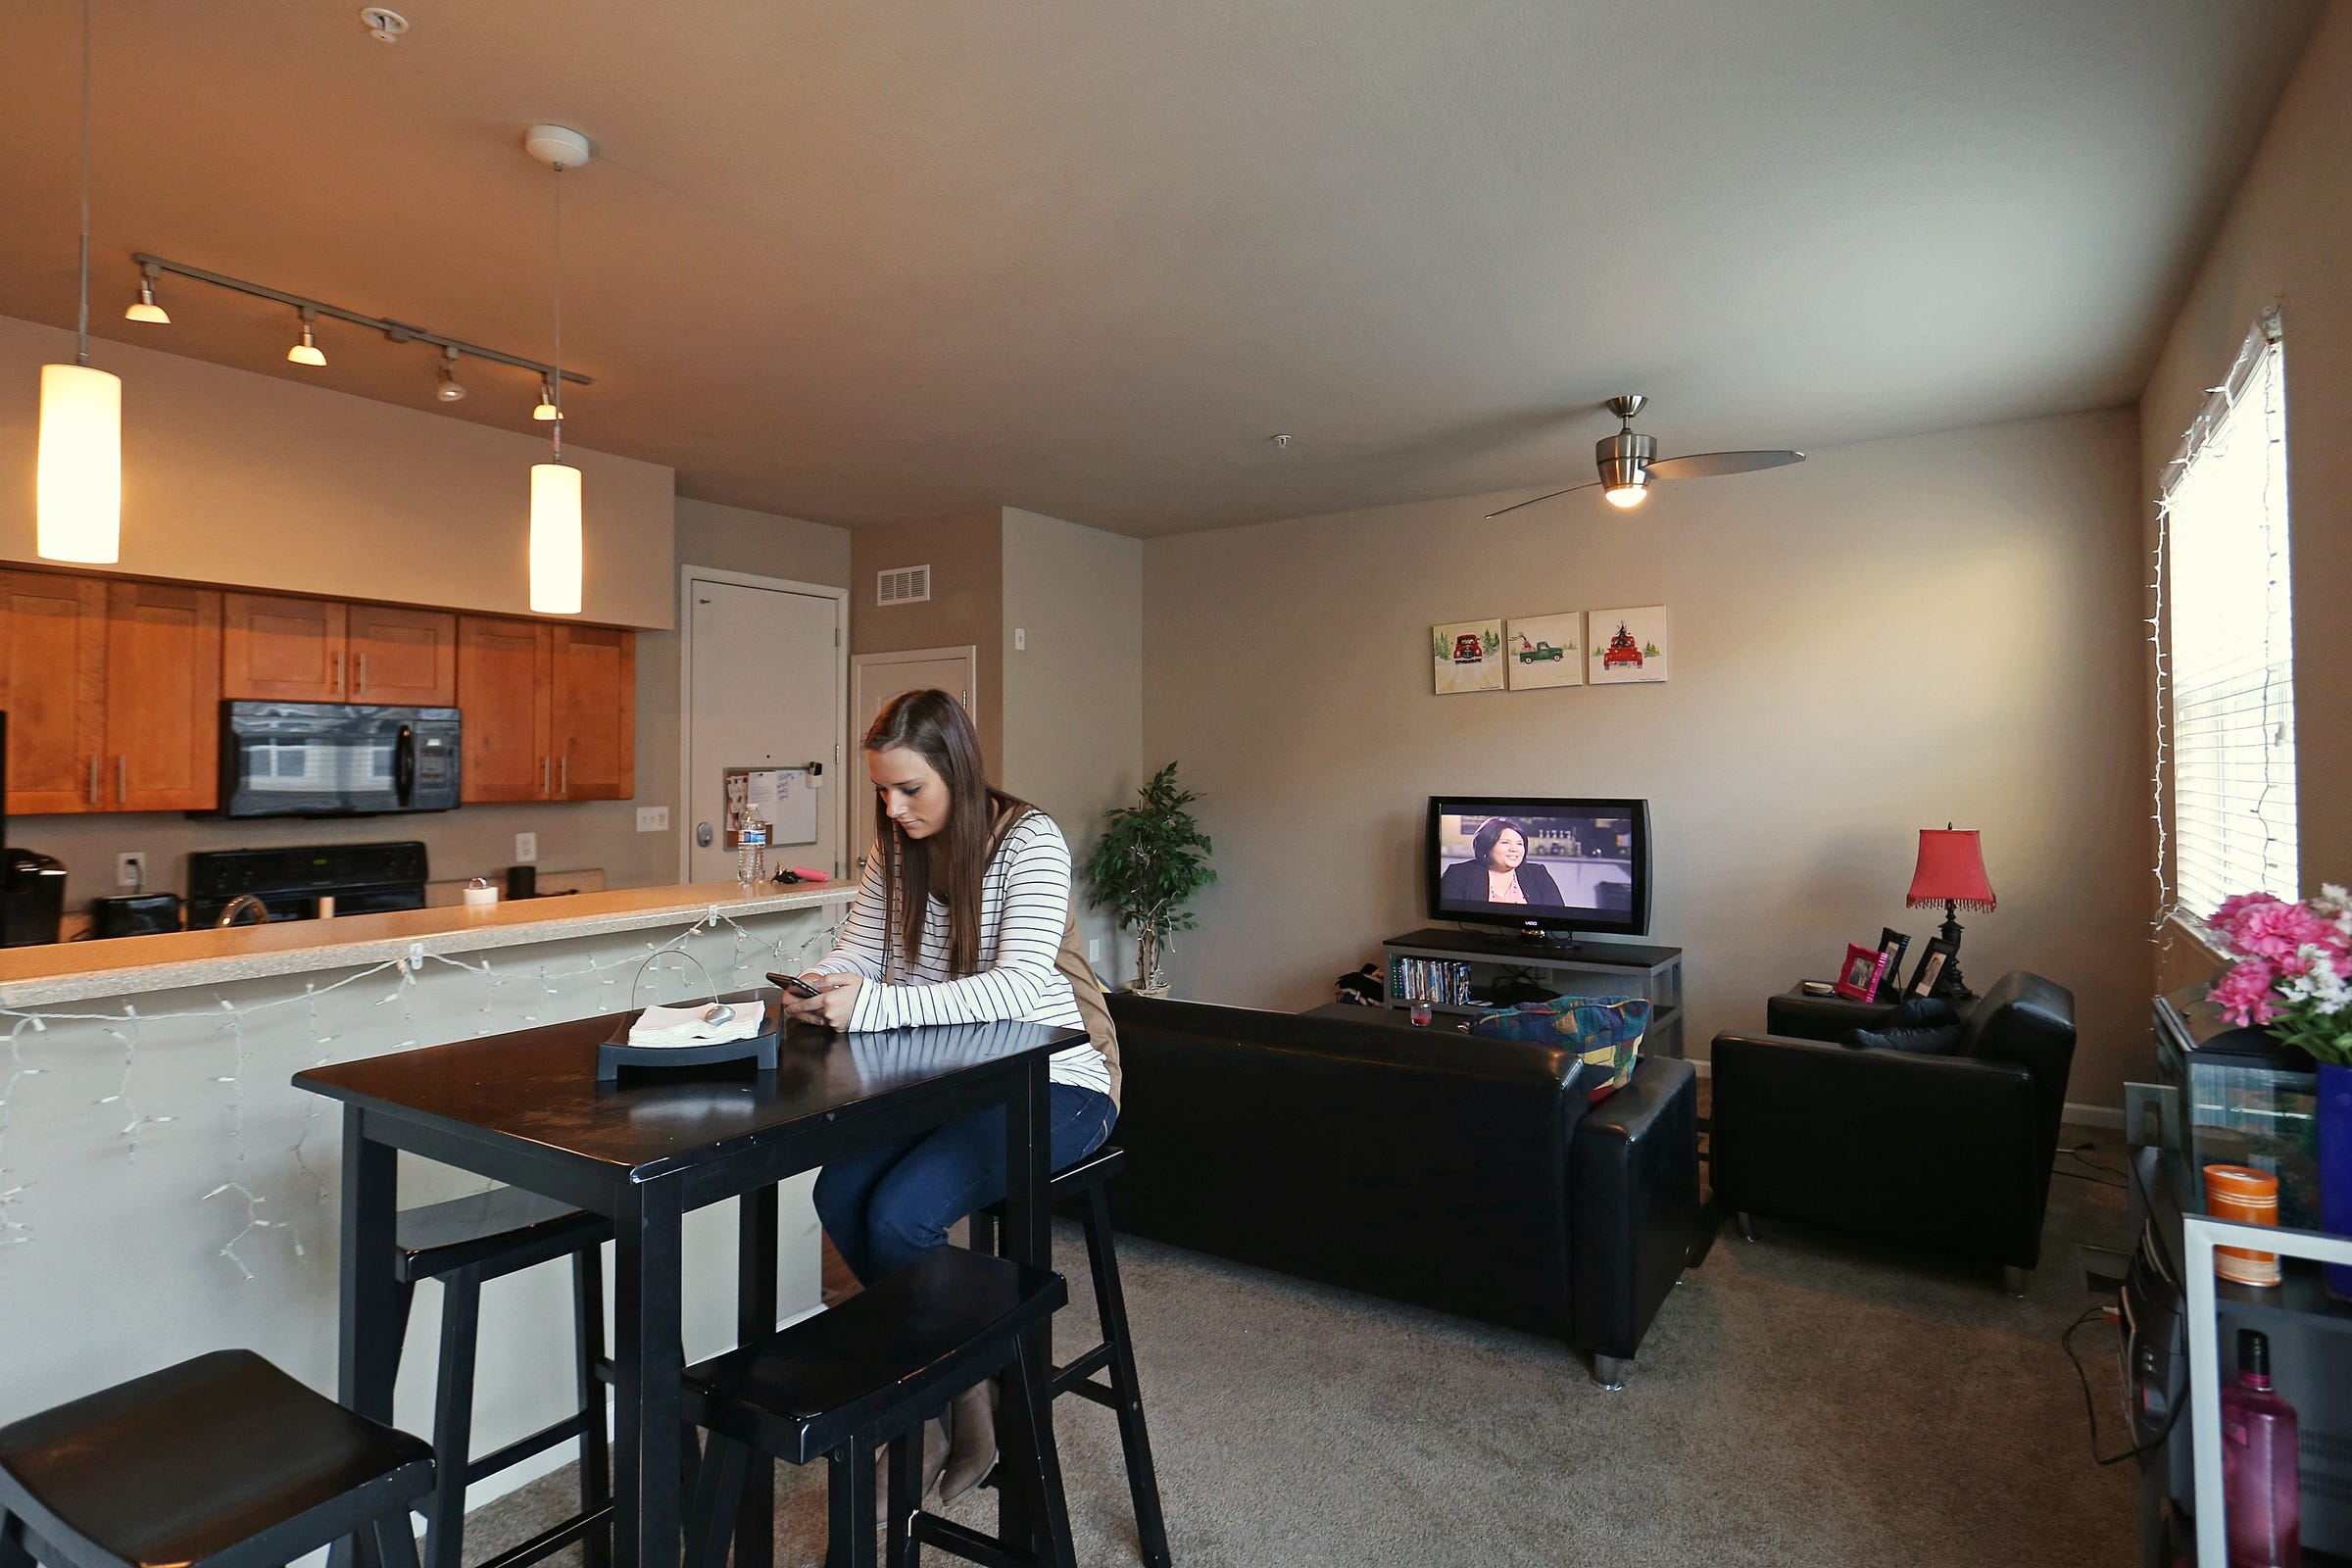 For some IUPUI students offcampus housing means resortstyle living